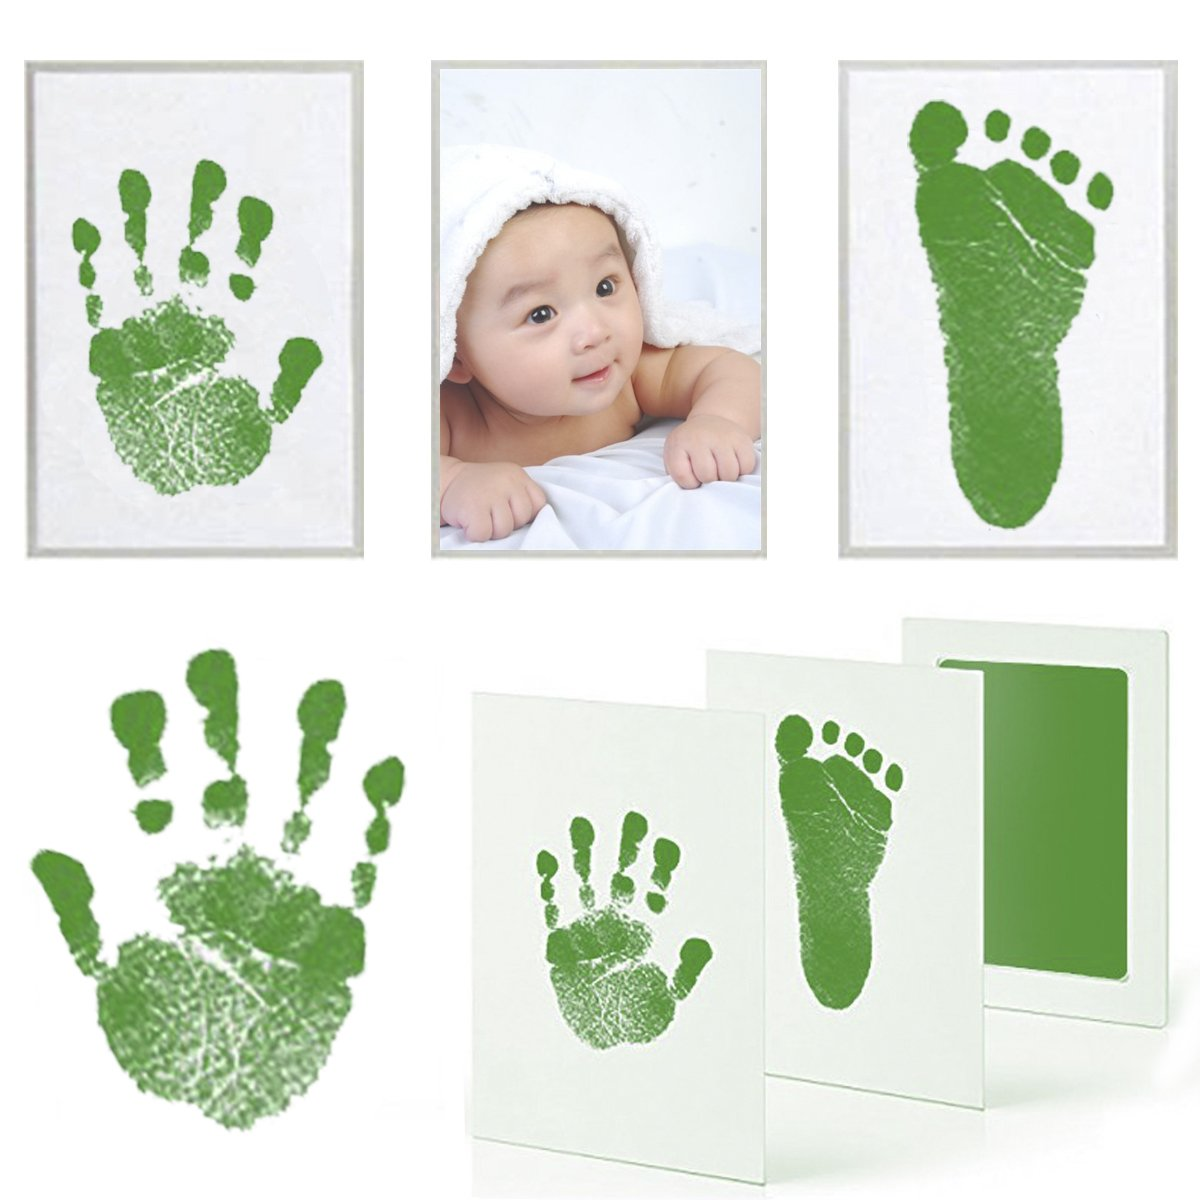 PartyYeah 3 Pcs Baby Ink Pad for Baby Footprints Hand Prints and Fingerprints Kit with 3 Extra Large Ink Pads and 6 Imprint Cards Perfect Keep Baby Memory Baby Shower Gift (Type-1, Blue) Party Yeah